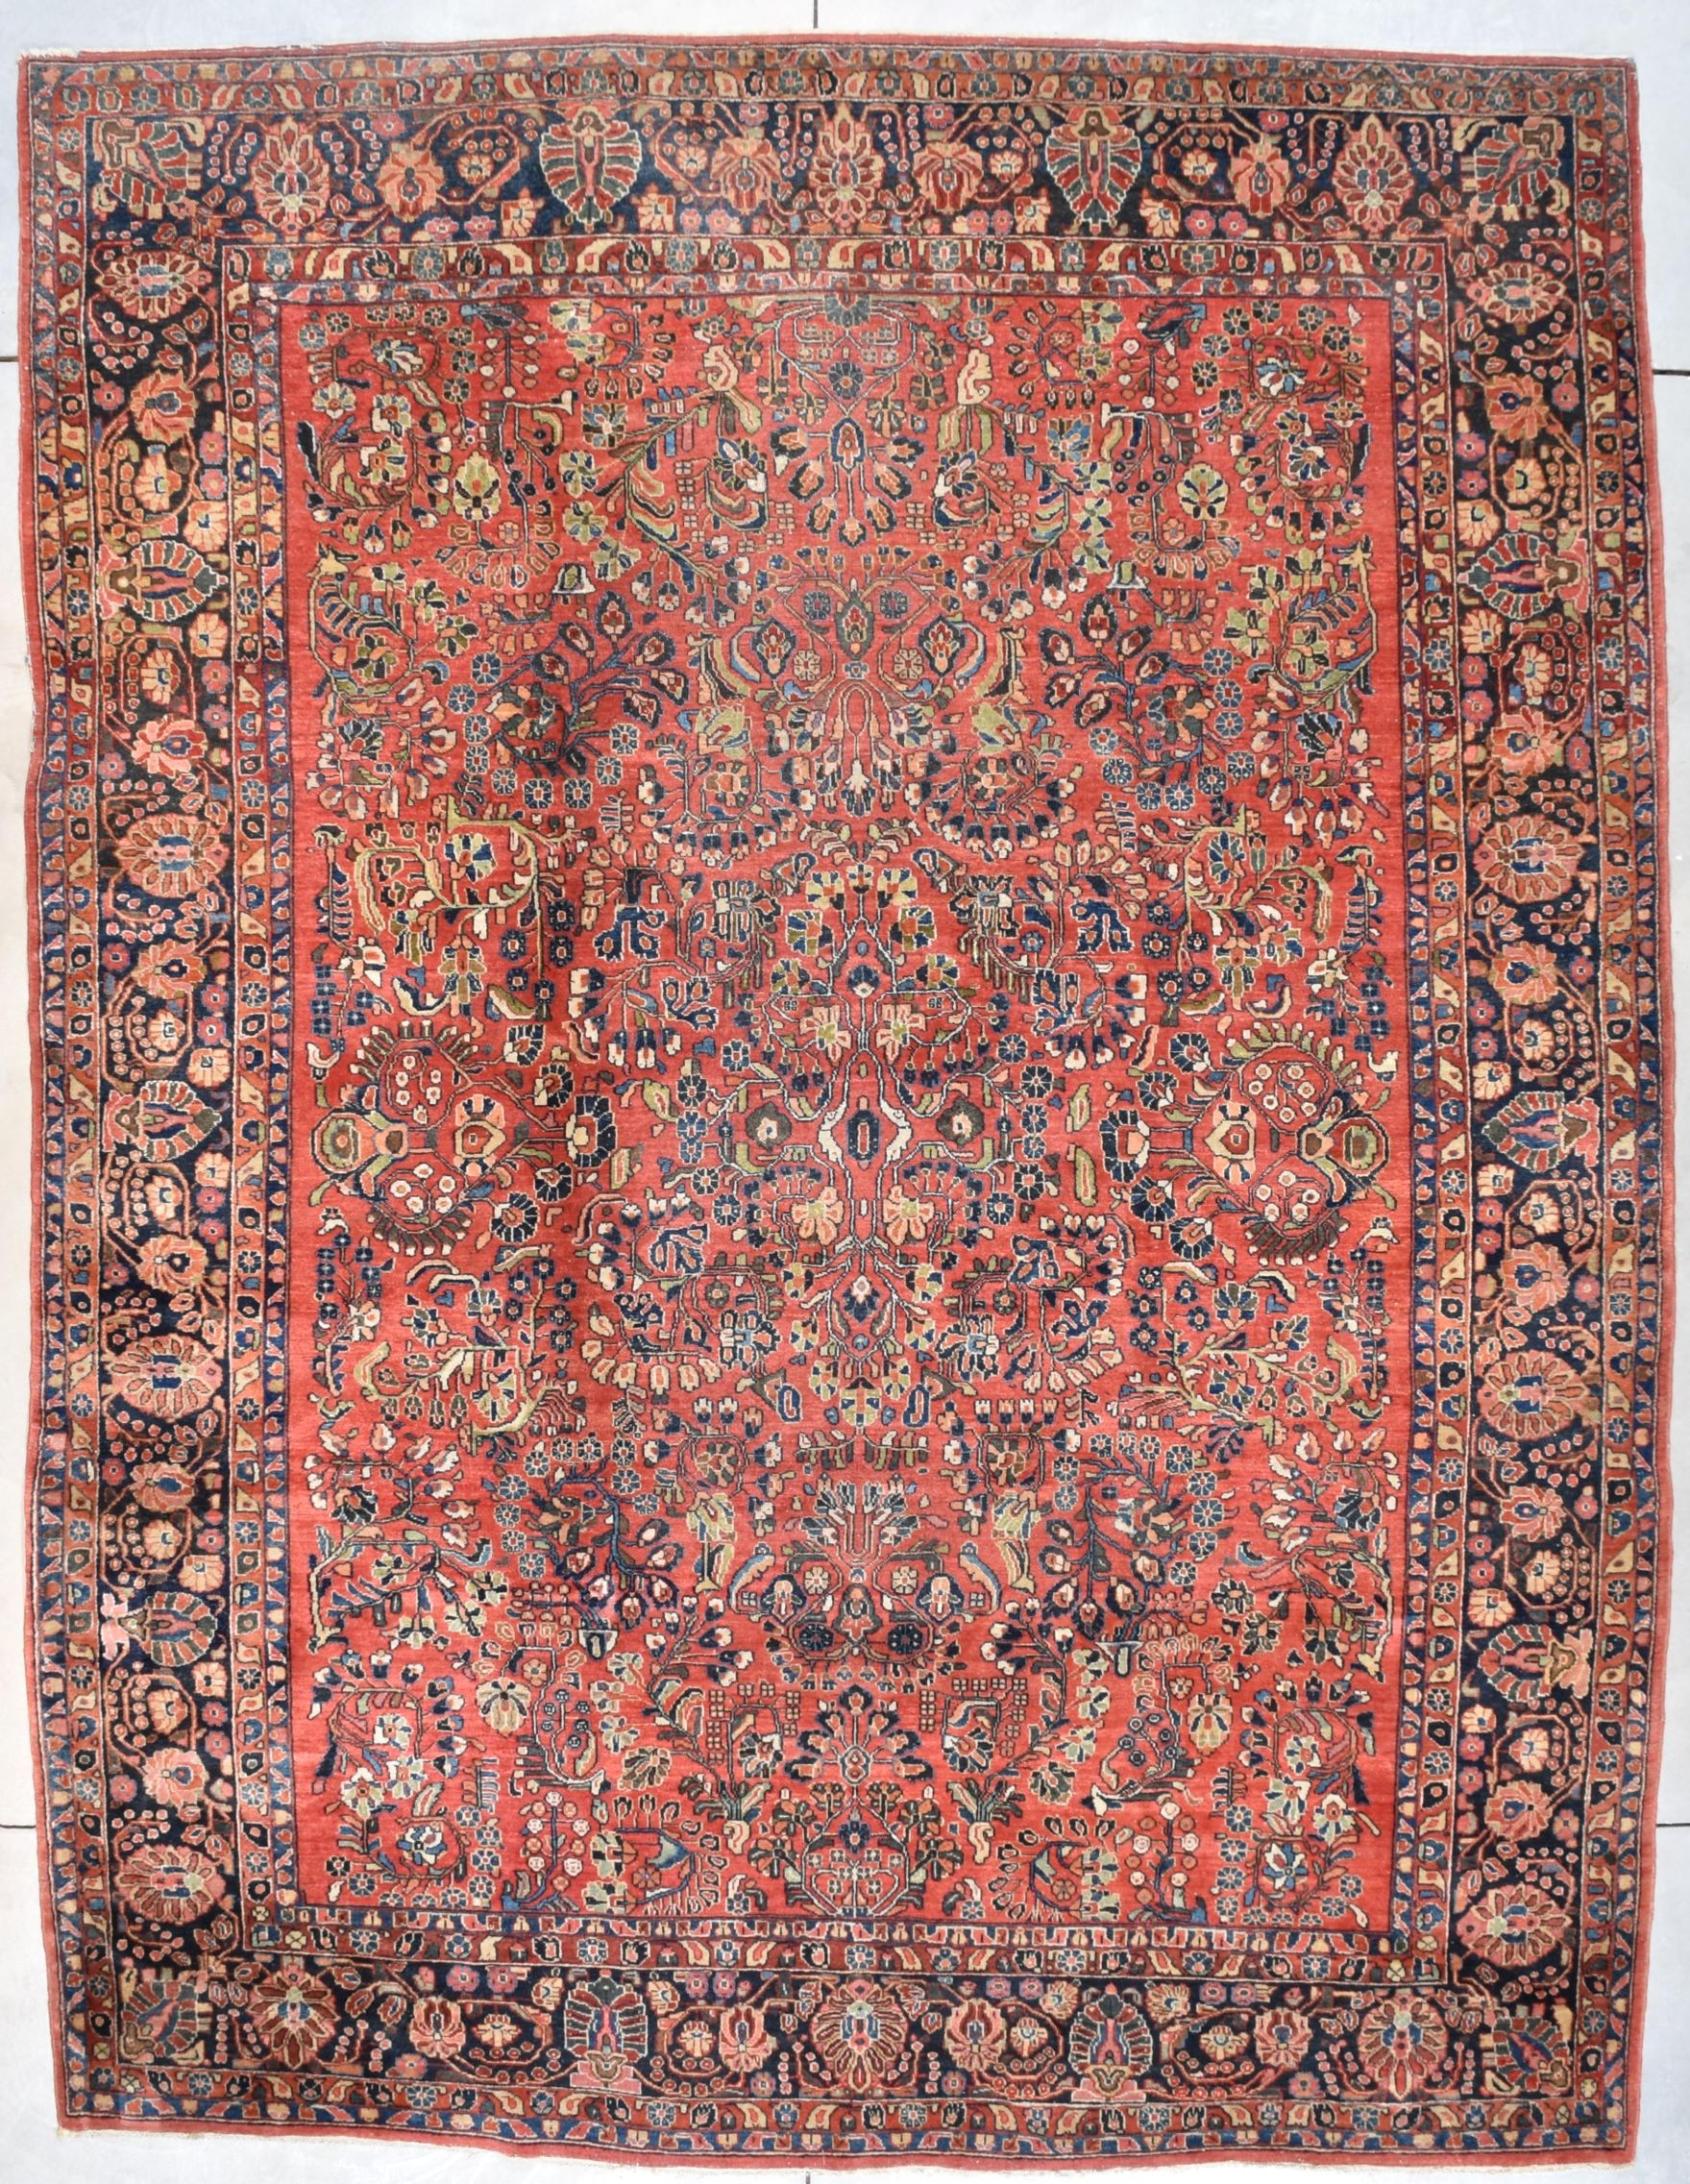 7698 Sarouk Antique Persian Rug 9 0 X 11